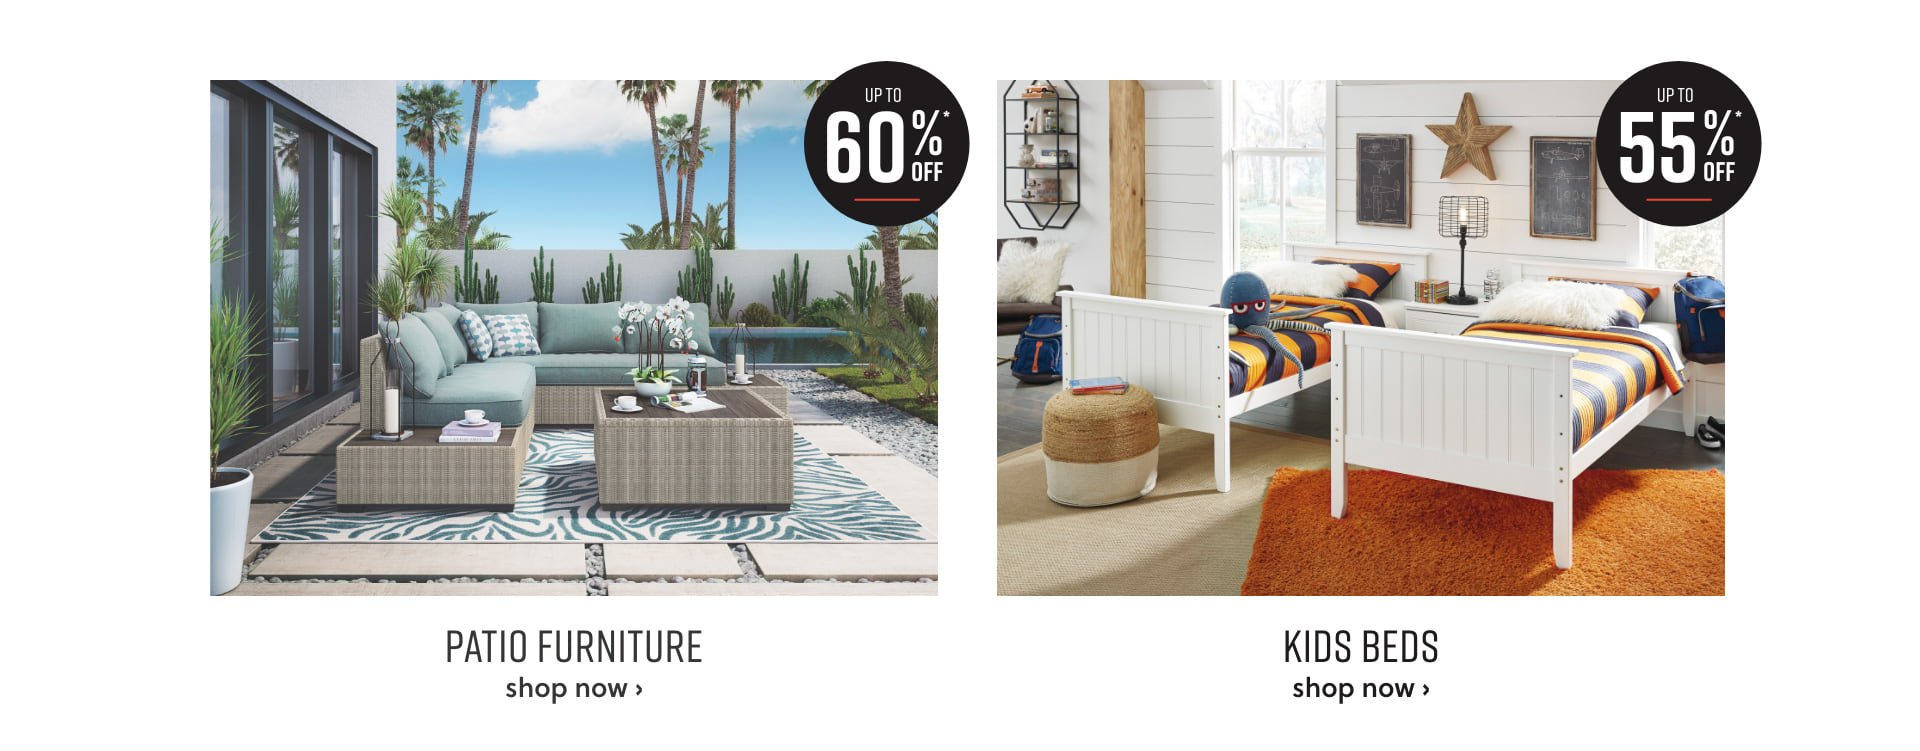 Outdoor Seating Sale and Pint-Size Furniture up to 50% off*